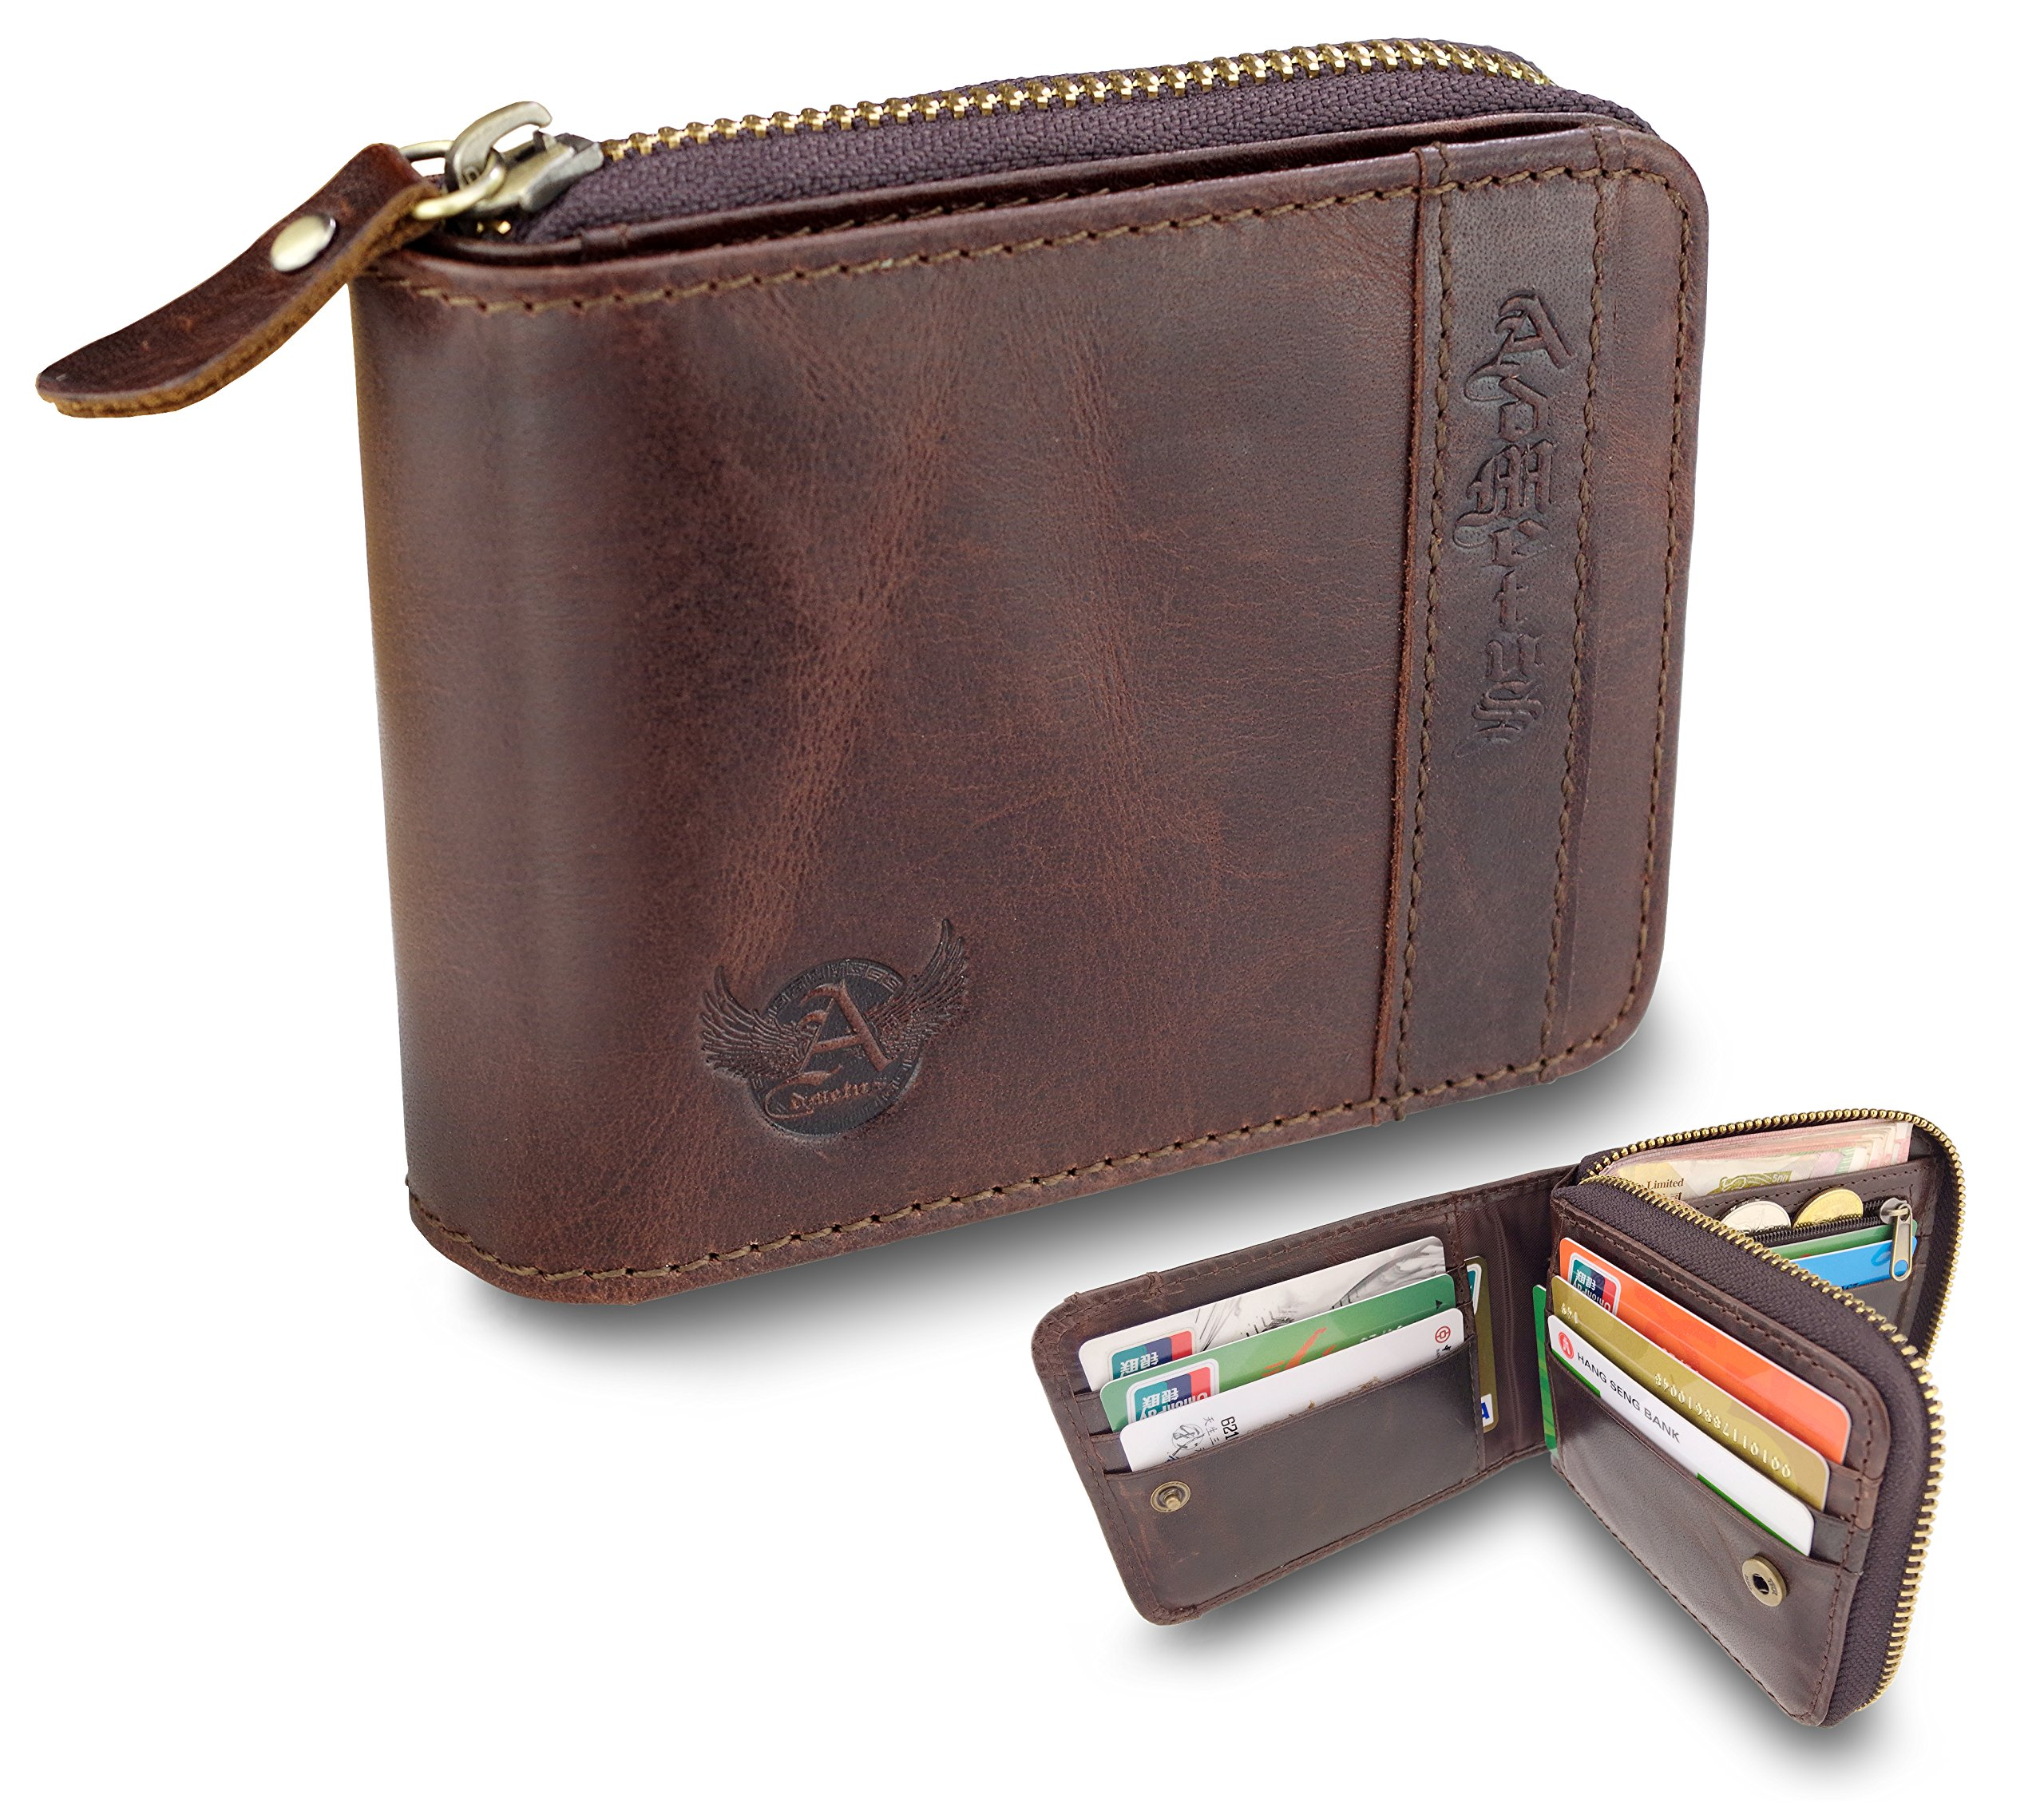 Admetus Genuine leather Zippered Bifold gifts for men ...